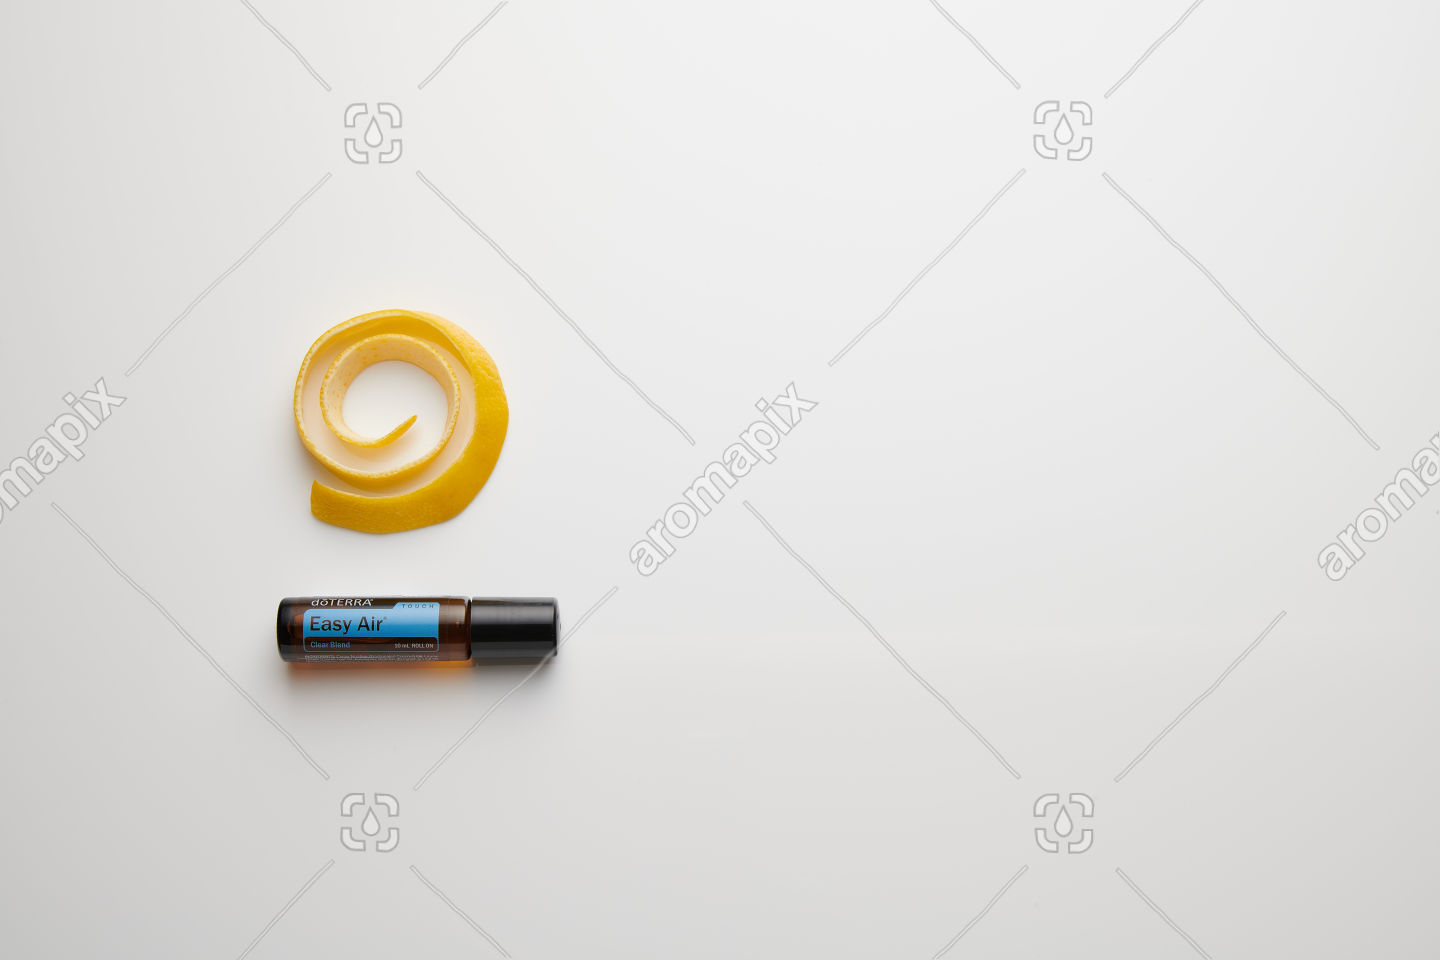 doTERRA Easy Air Touch with lemon peel on white perspex